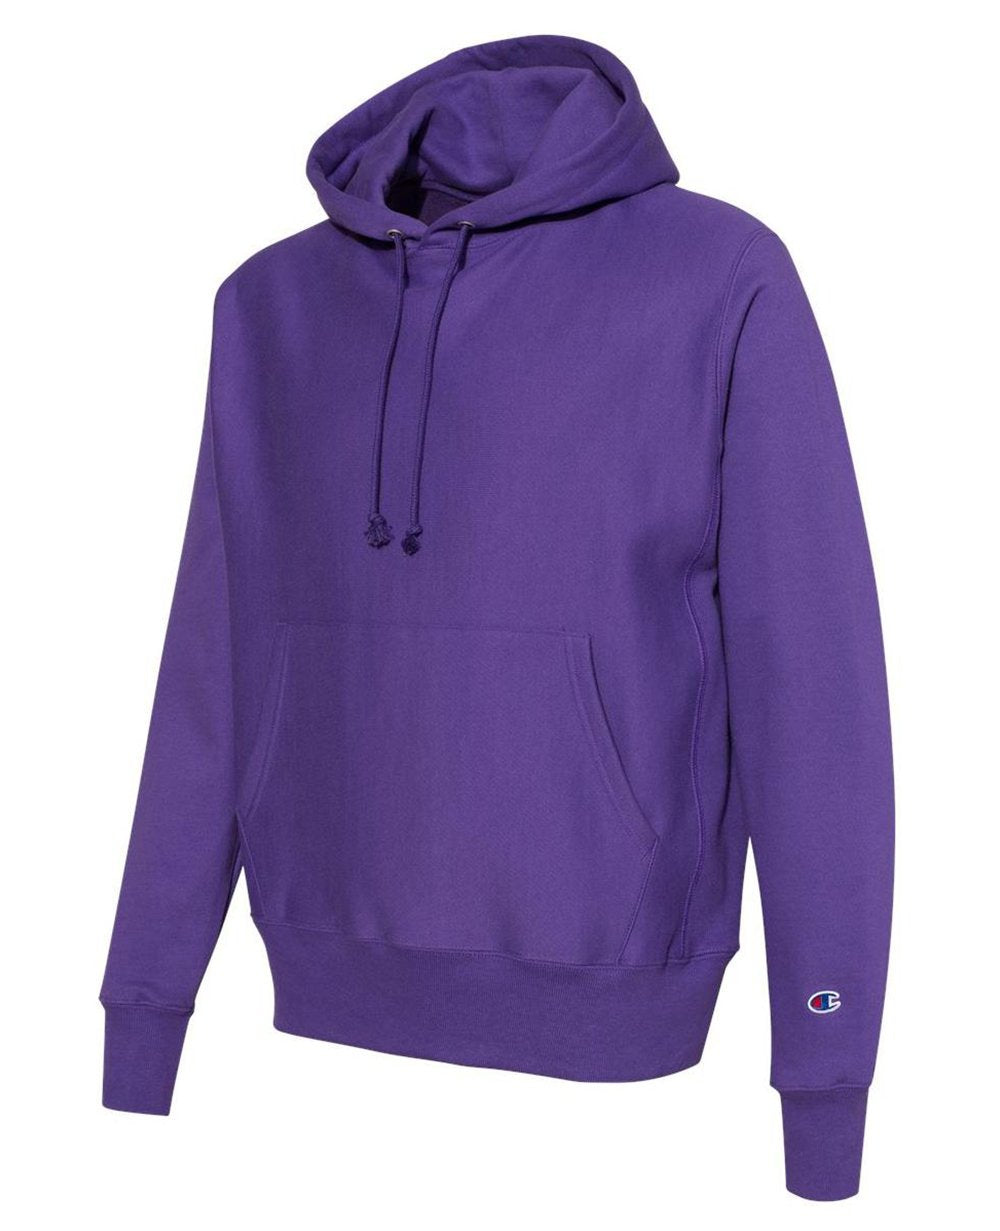 Sleeve Logo Pullover Hoodies in Purple